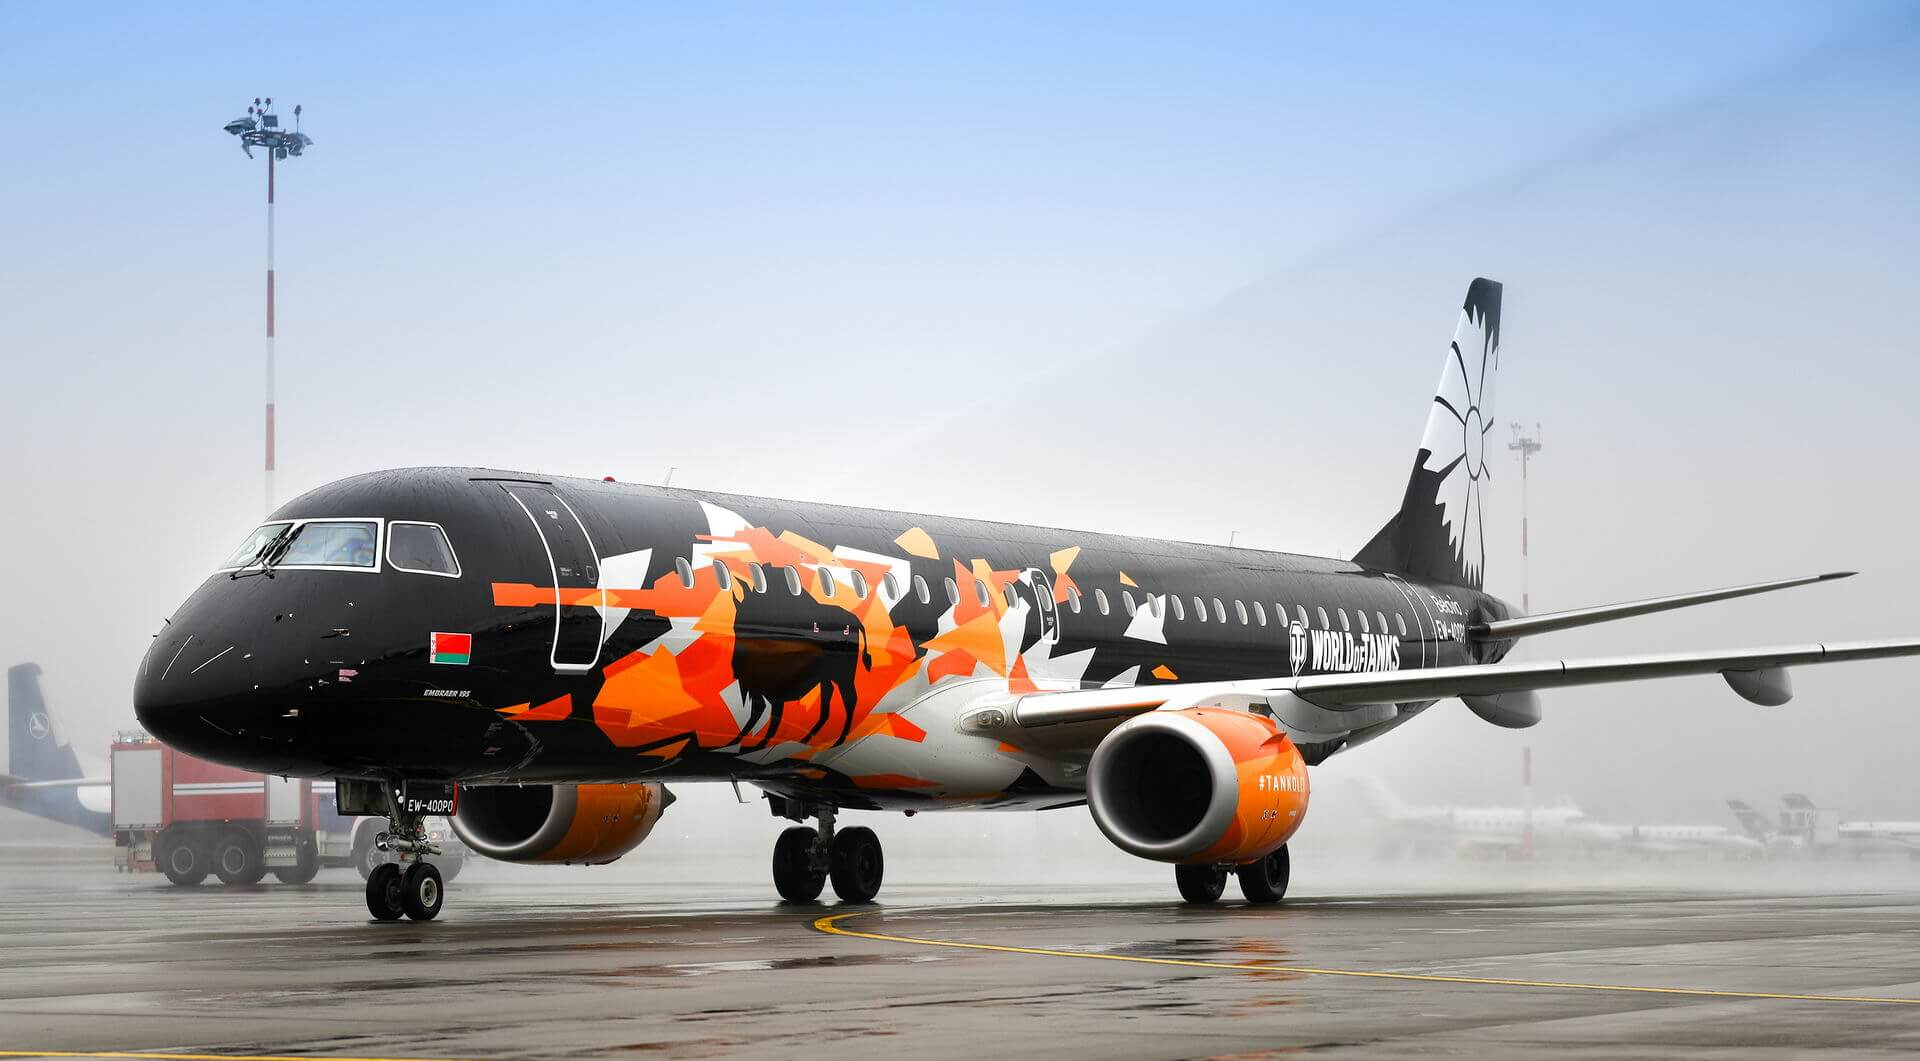 Belavia's E-195 combines World of Tanks with national symbols